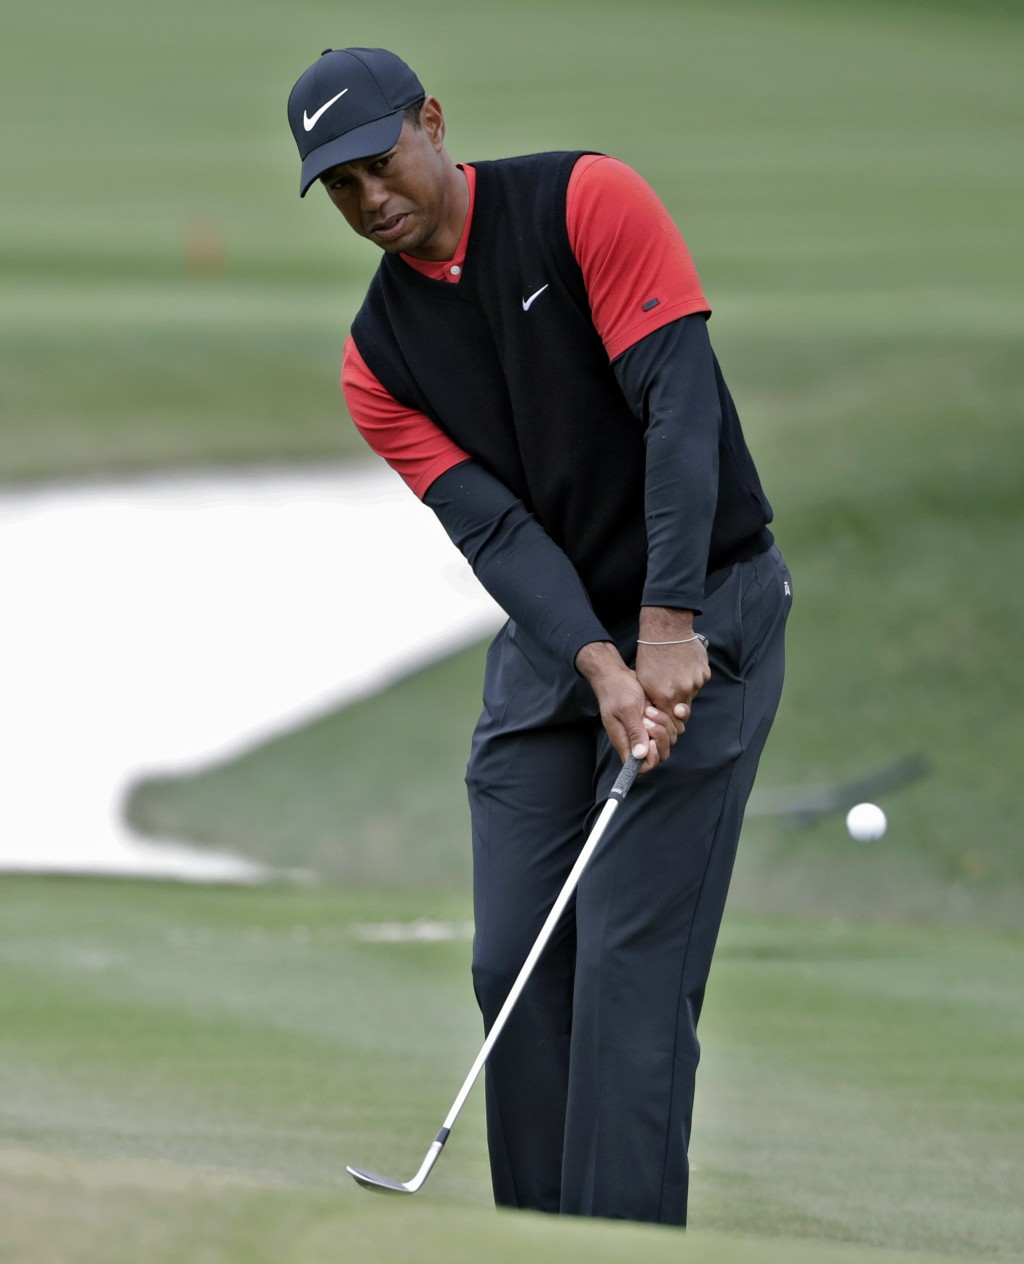 Tiger Woods chips onto the ninth green during the final round of The Players Championship golf tournament Sunday, March 17, 2019, in Ponte Vedra Beach